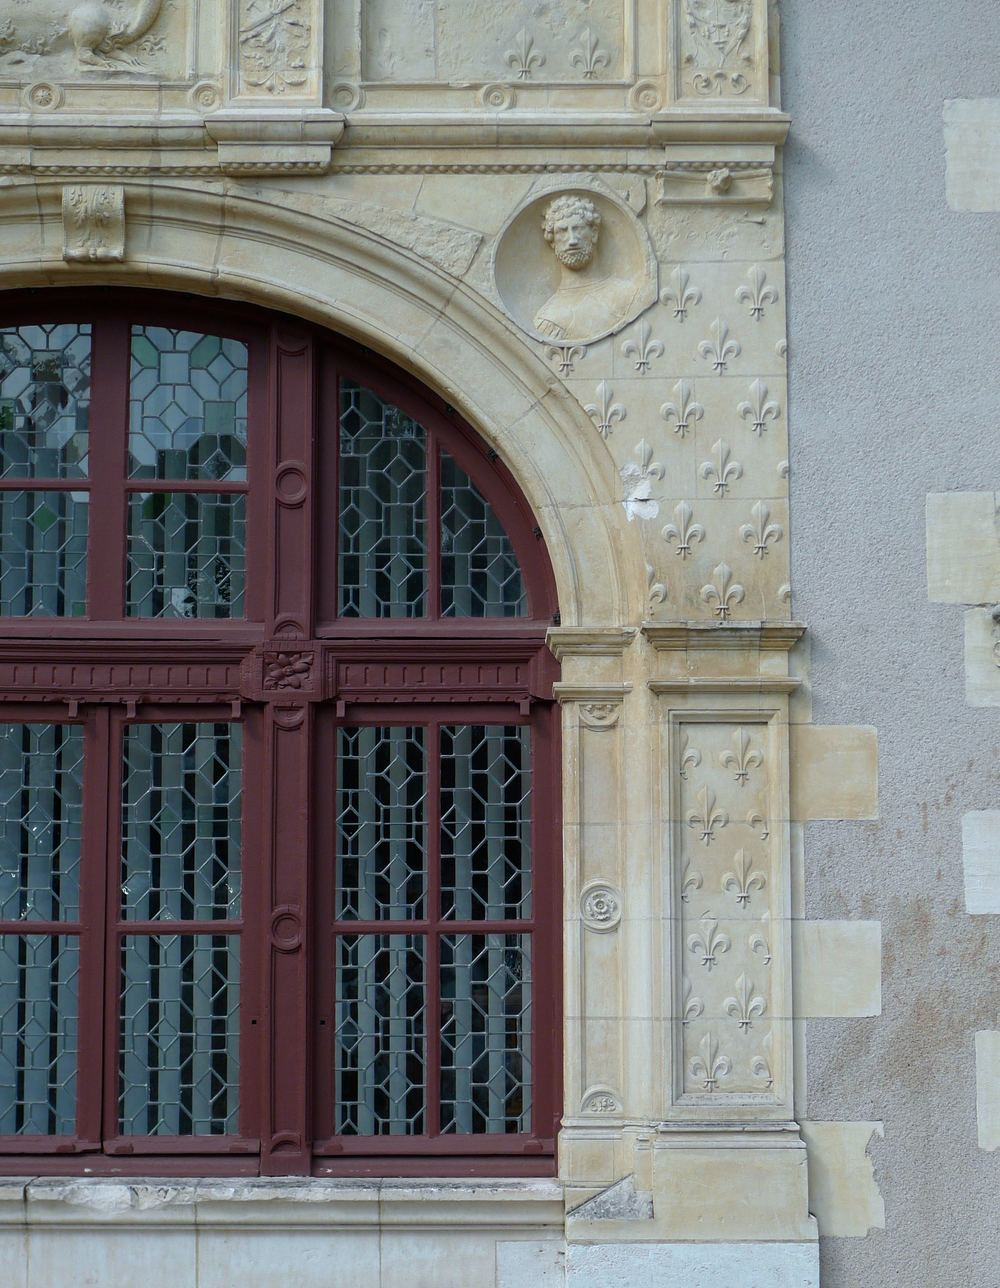 A closer look at the stonework on the Hotel de Ville in Beaugency